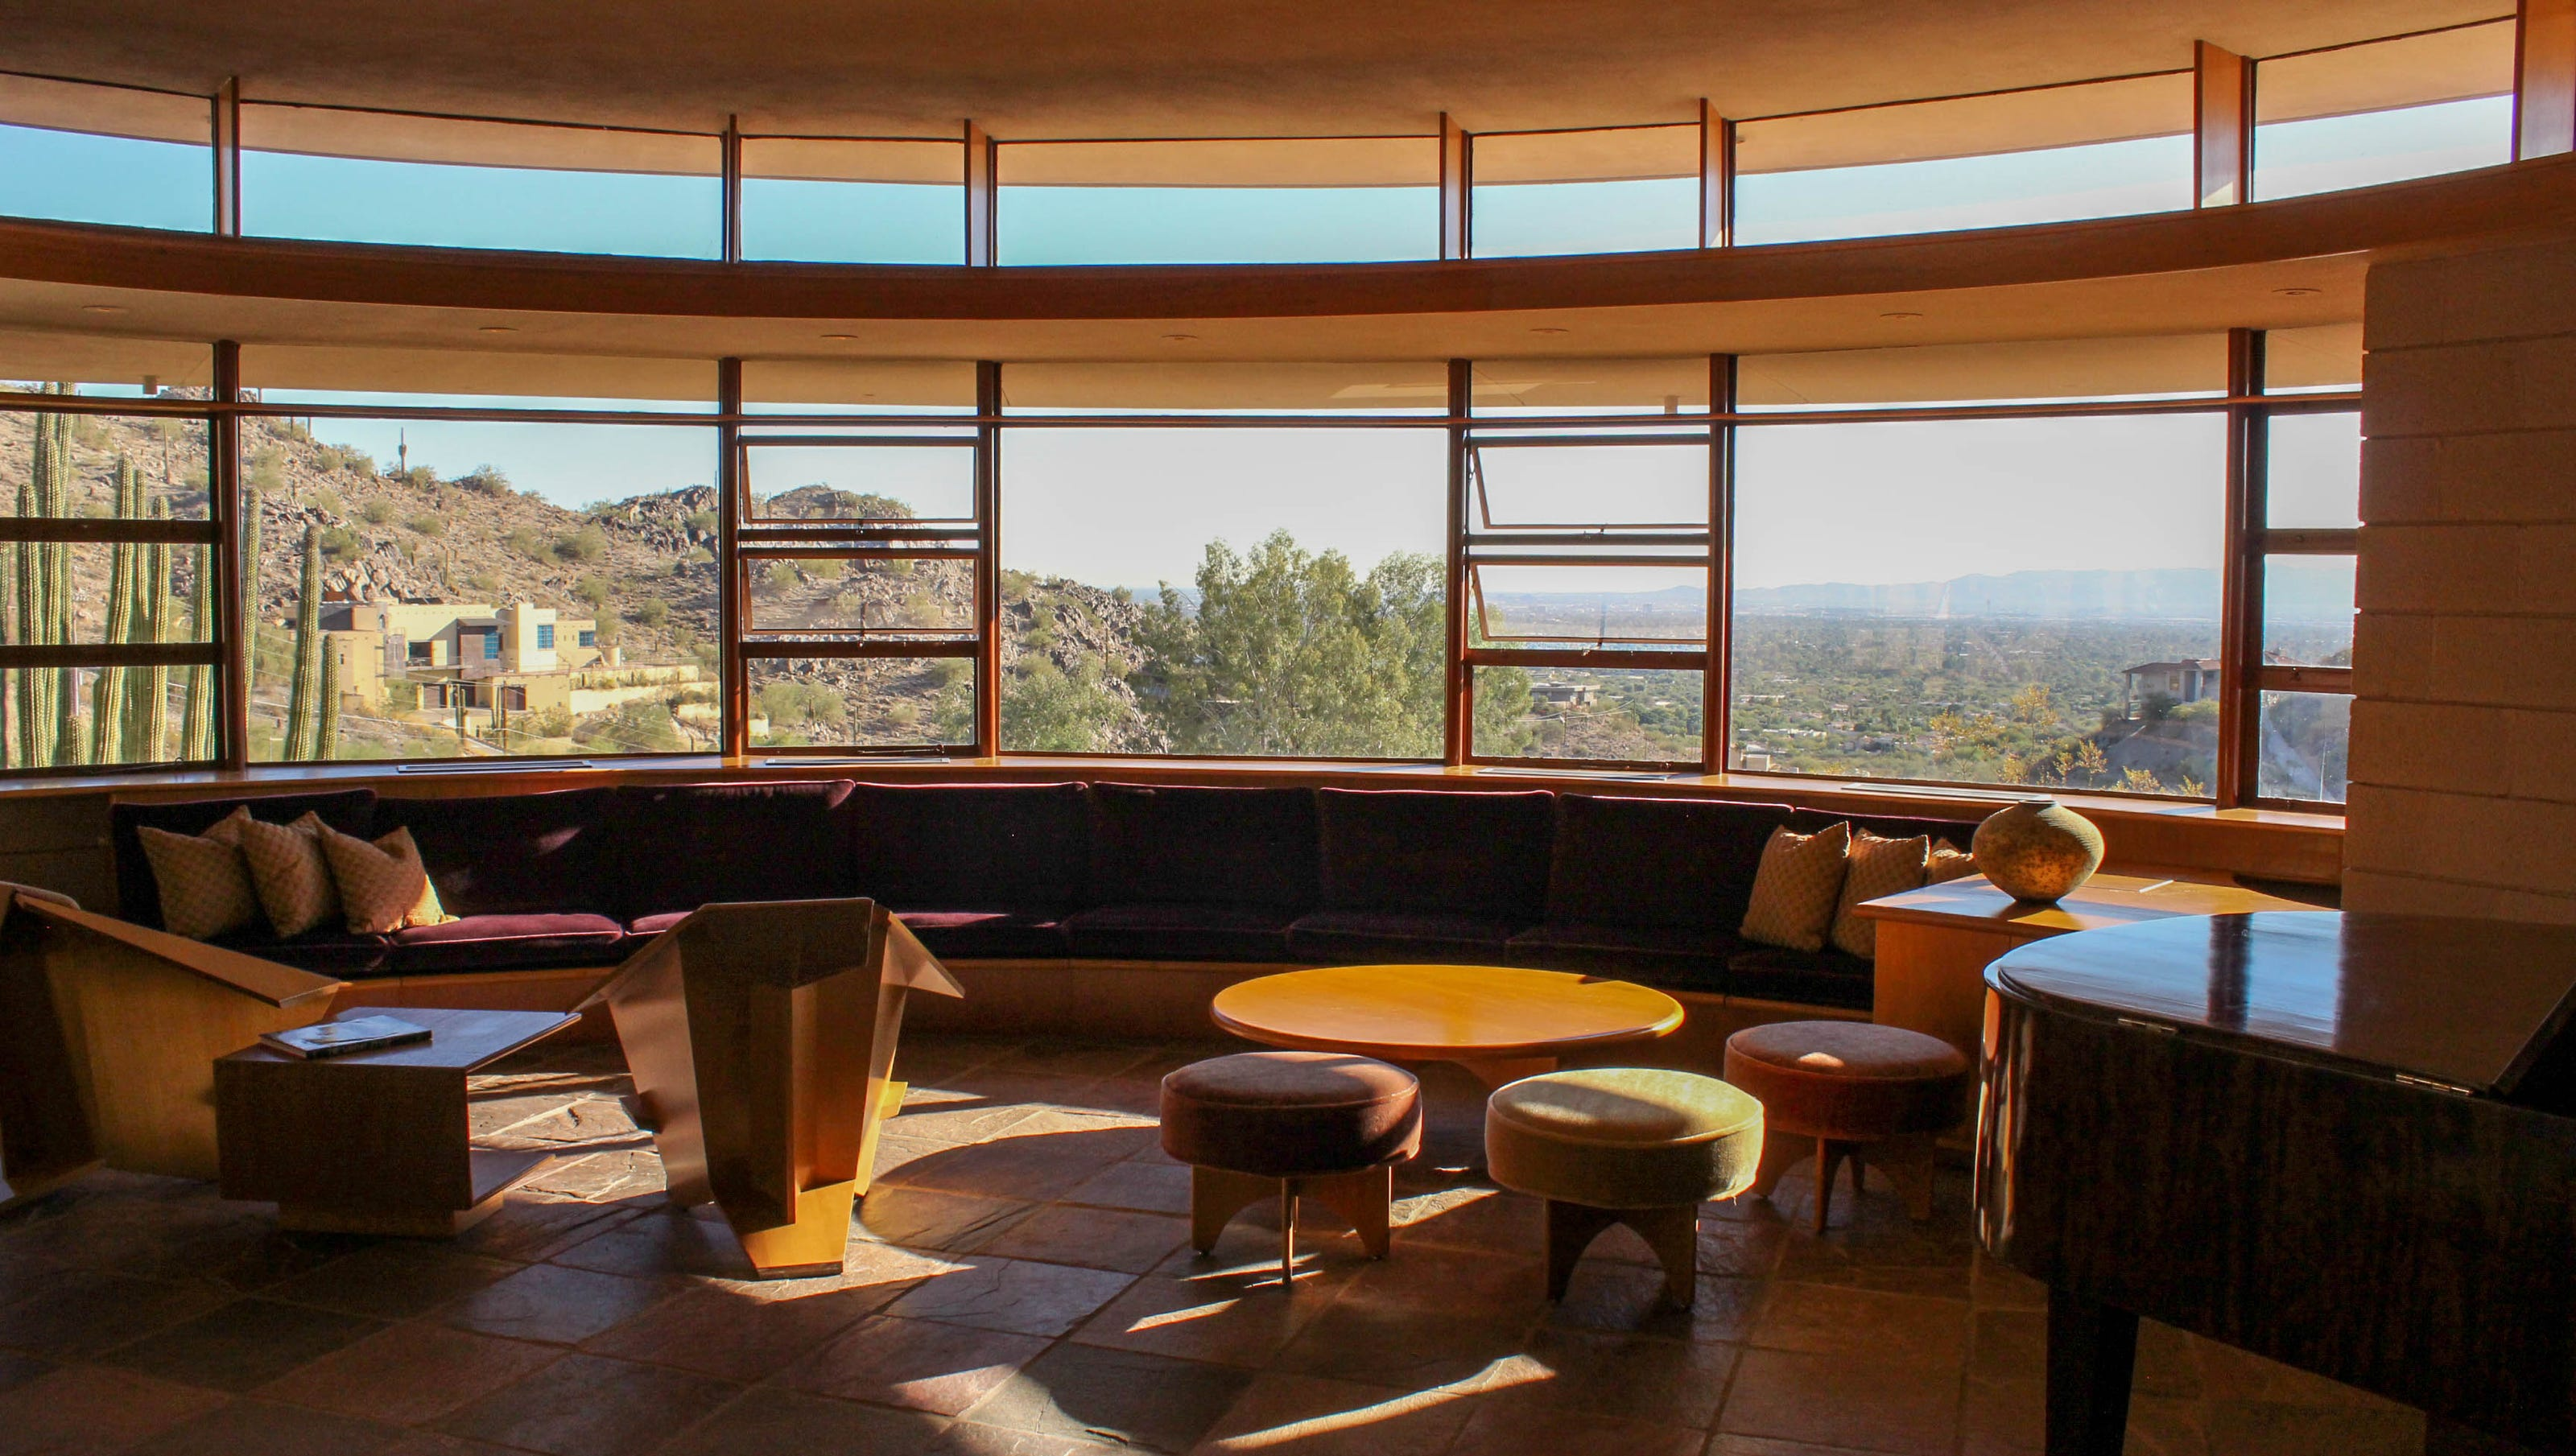 Iconic Frank Lloyd Wright Designed House For Sale In Phoenix 3 25m